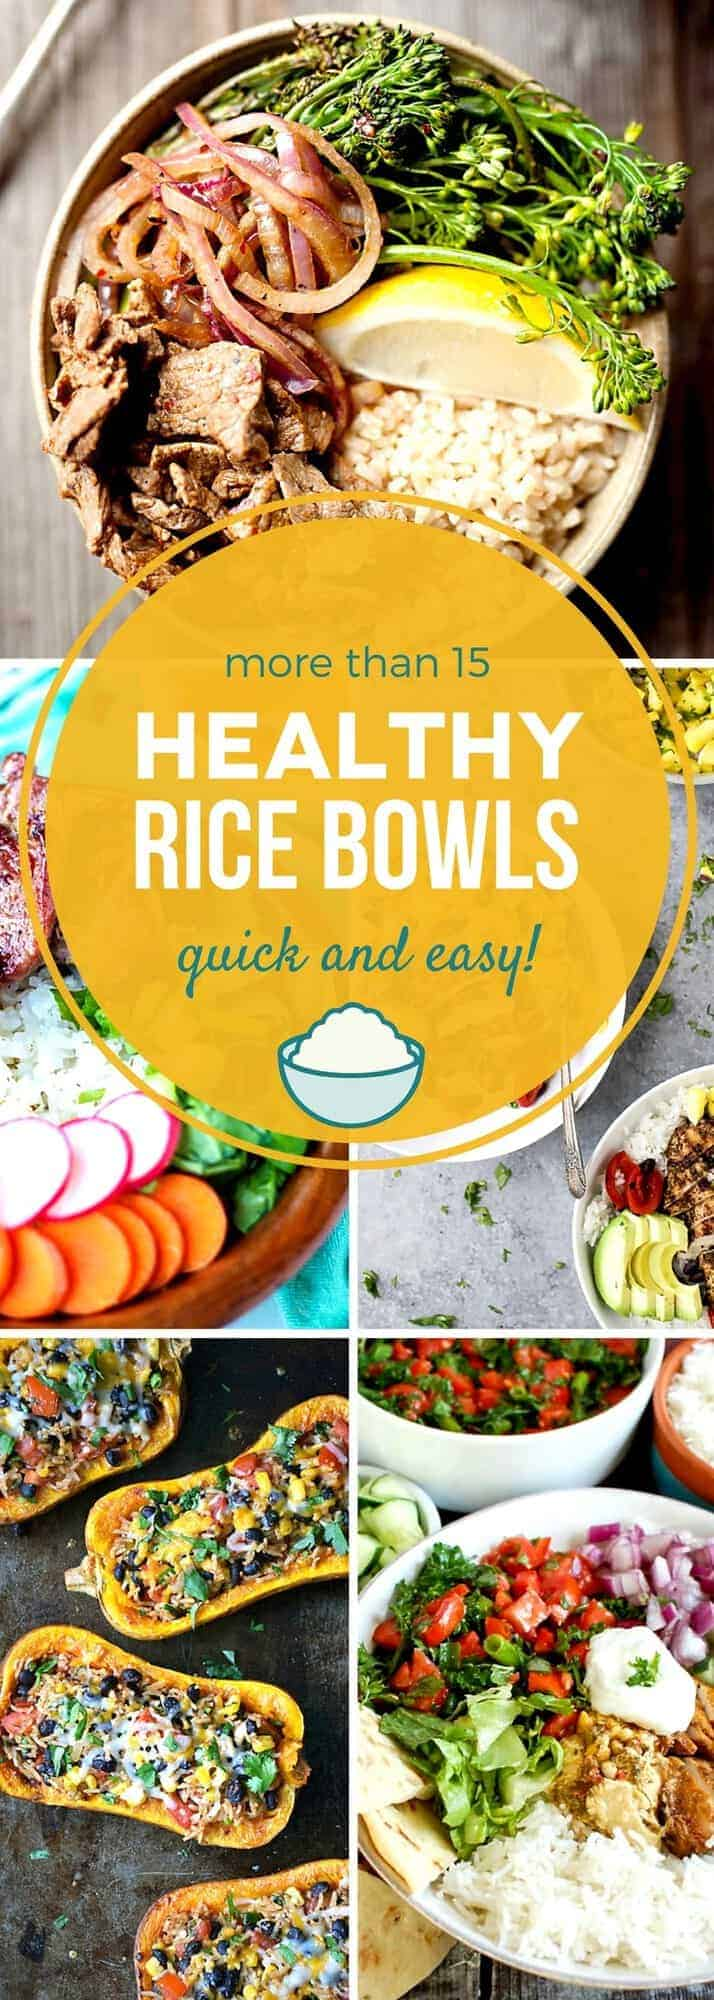 Start the new year off right by adding these healthy rice bowls to your home menu! These easy recipes are quick to prepare, and are full of hearty grains, lean proteins, and delicious vegetables. With both gluten free and vegan options, you're sure to find the perfect healthy rice bowl recipe for you in this collection! #SundaySupper #healthyitup #healthyrecipes #ricedish #nourishbowl